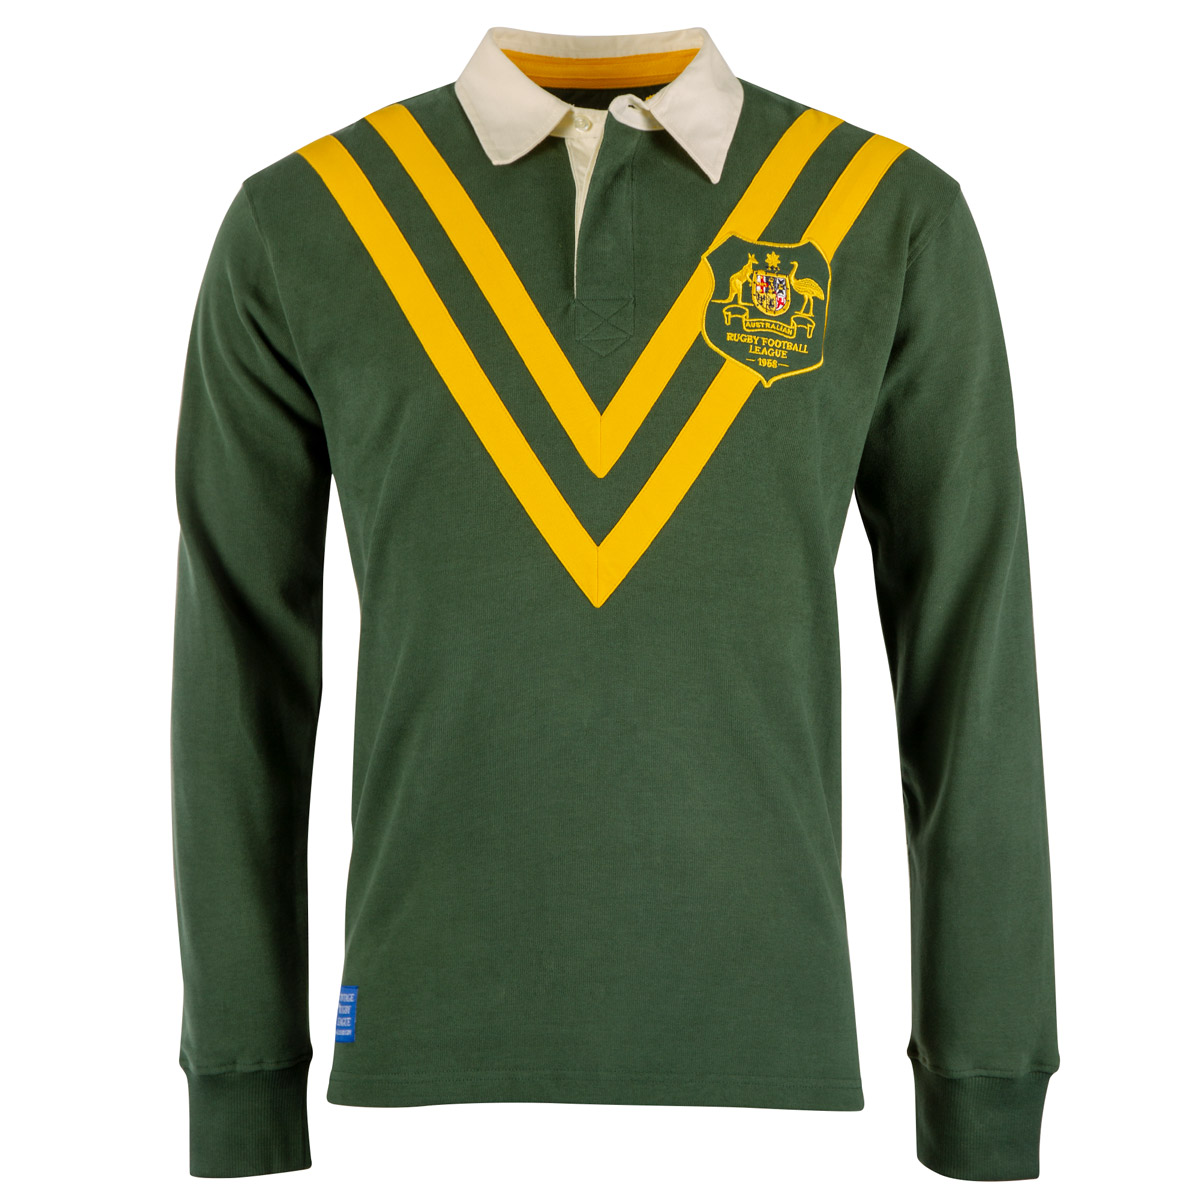 bb1756c6fc6 Mens Vintage Australia 1968 Rugby League Jersey | rugbystore